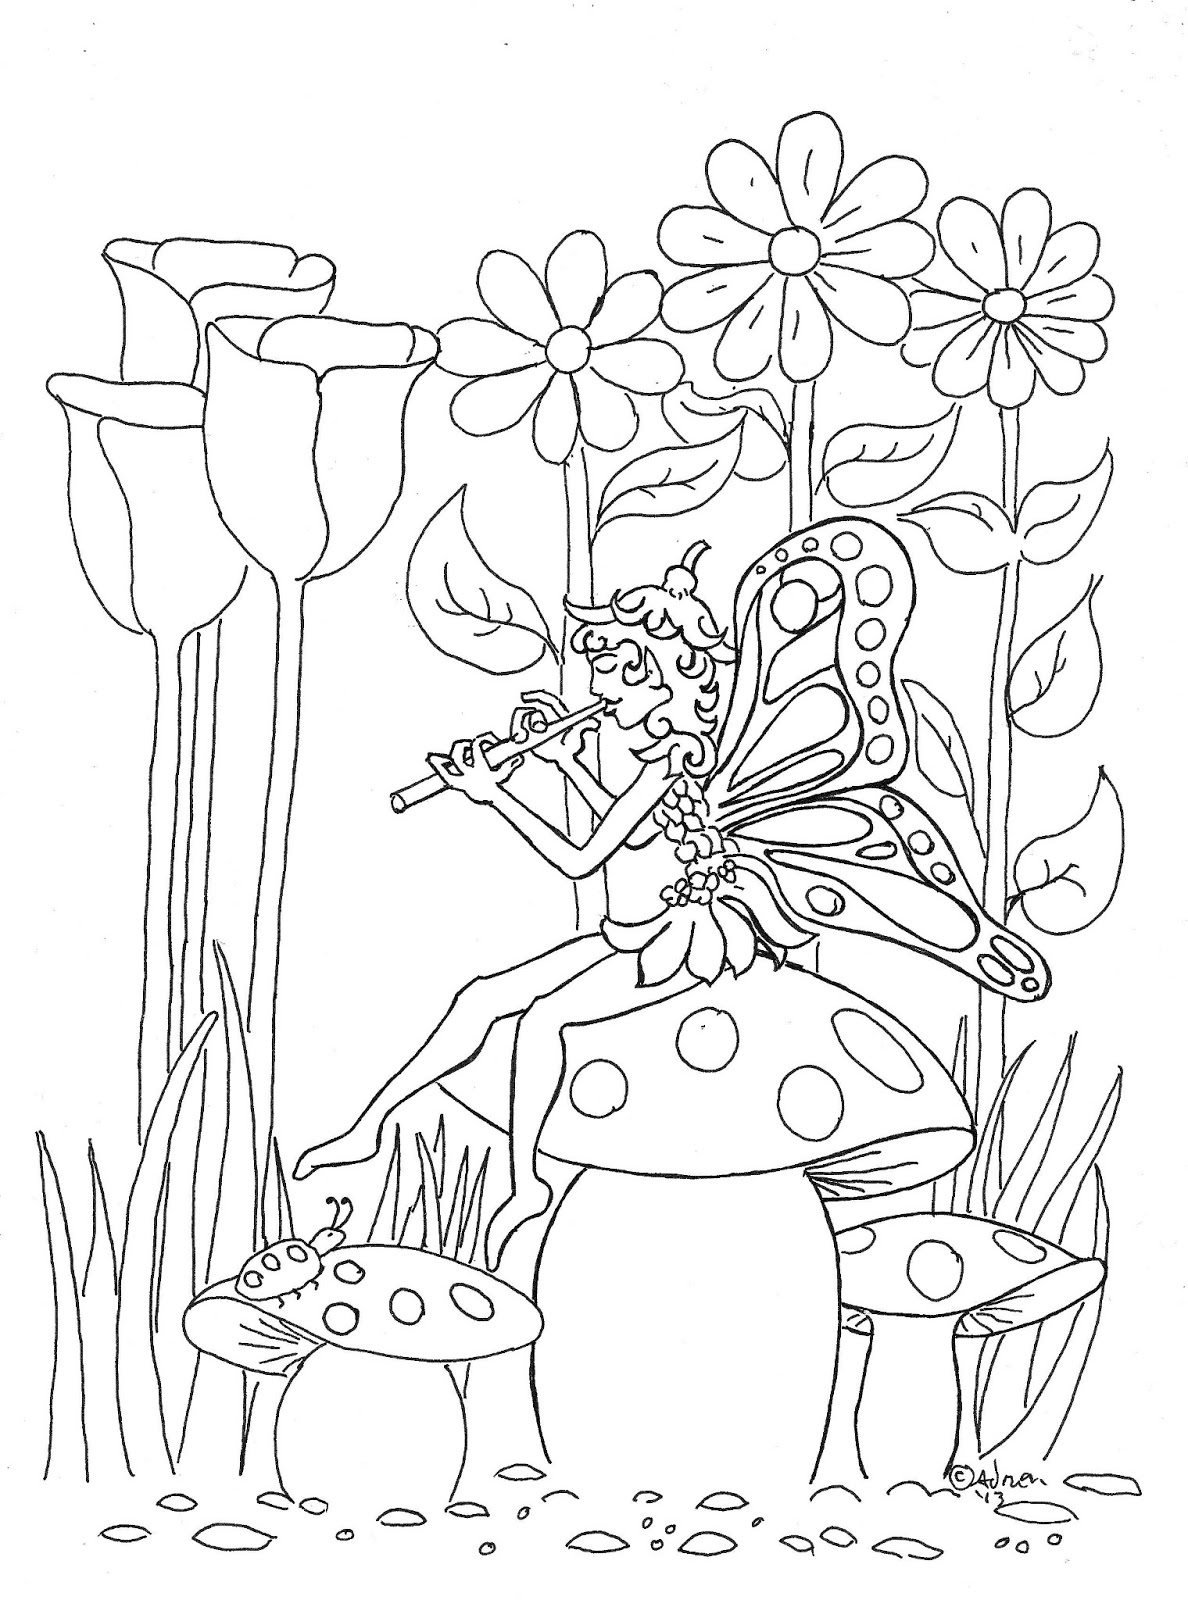 coloring fairies for kids coloring pages for kids by mr adron pixie fairy print for coloring fairies kids